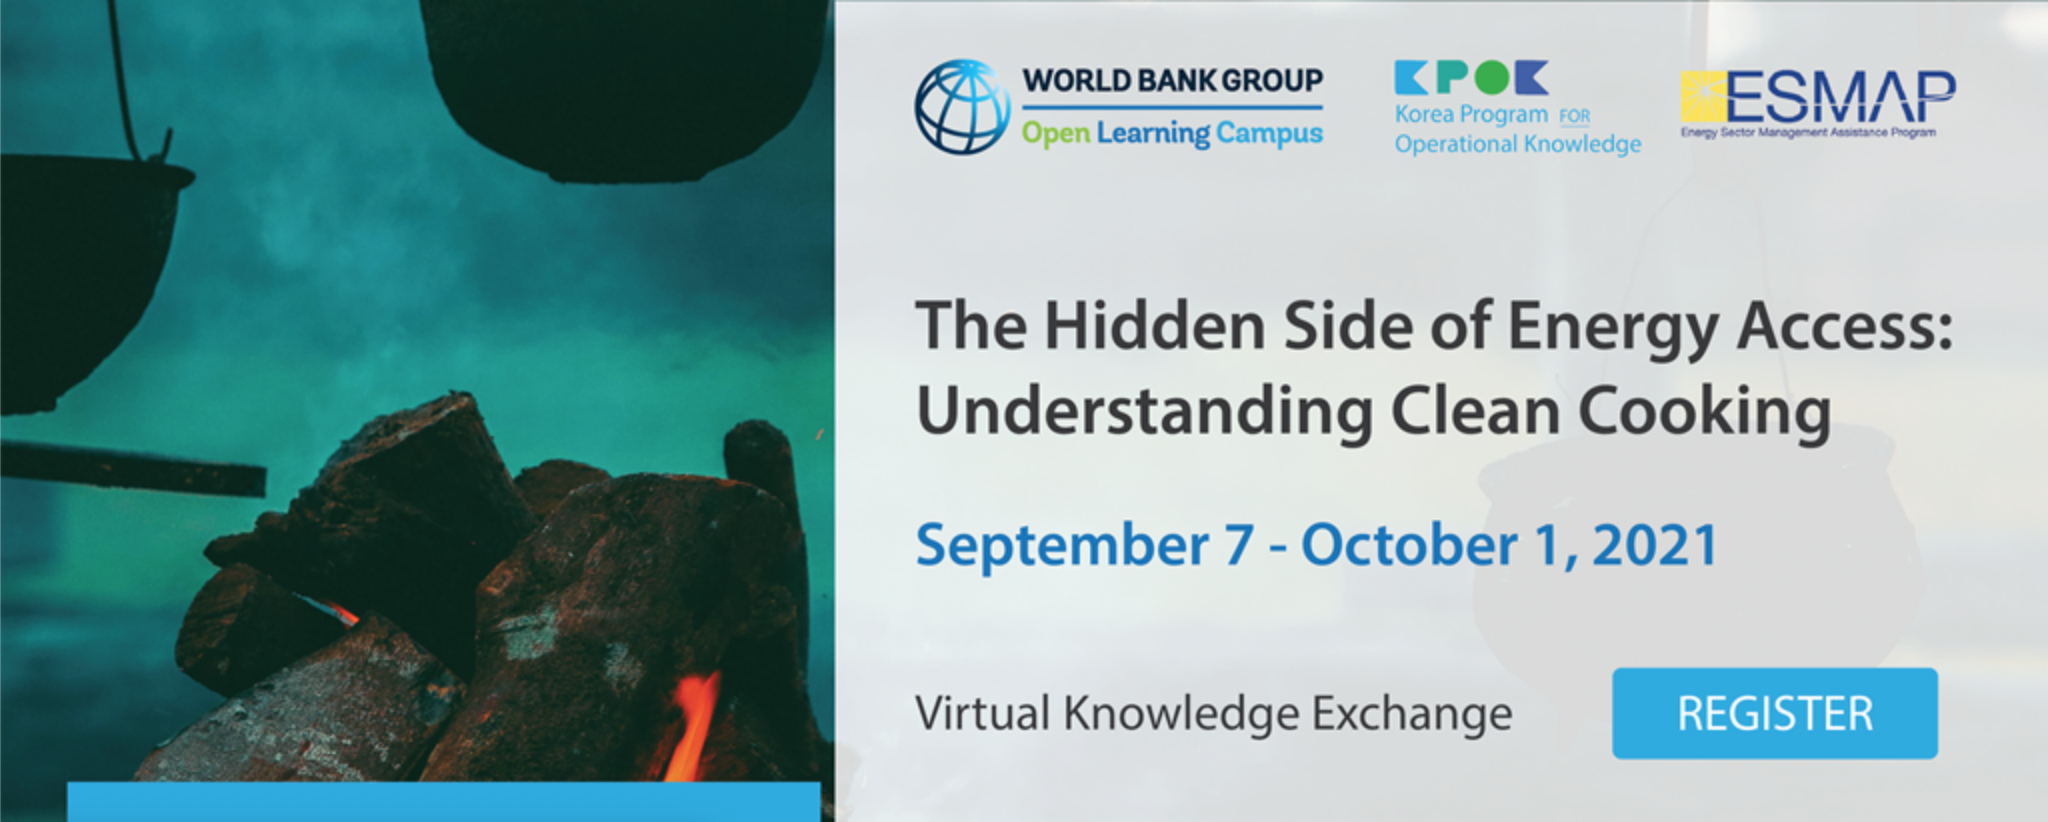 Course: The Hidden Side of Energy Access: Understanding Clean Cooking